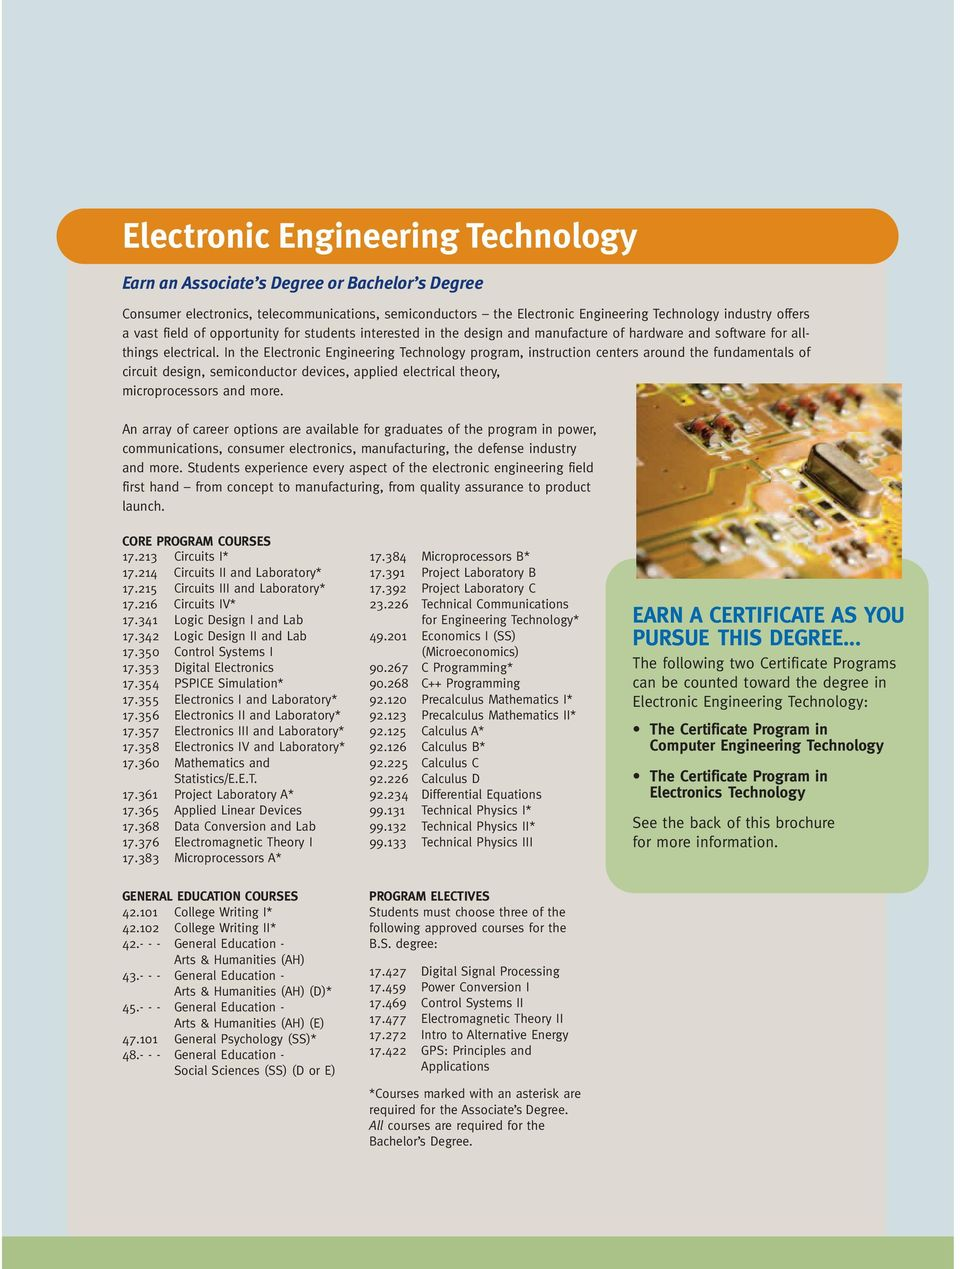 In the Electronic Engineering Technology program, instruction centers around the fundamentals of circuit design, semiconductor devices, applied electrical theory, microprocessors and more.